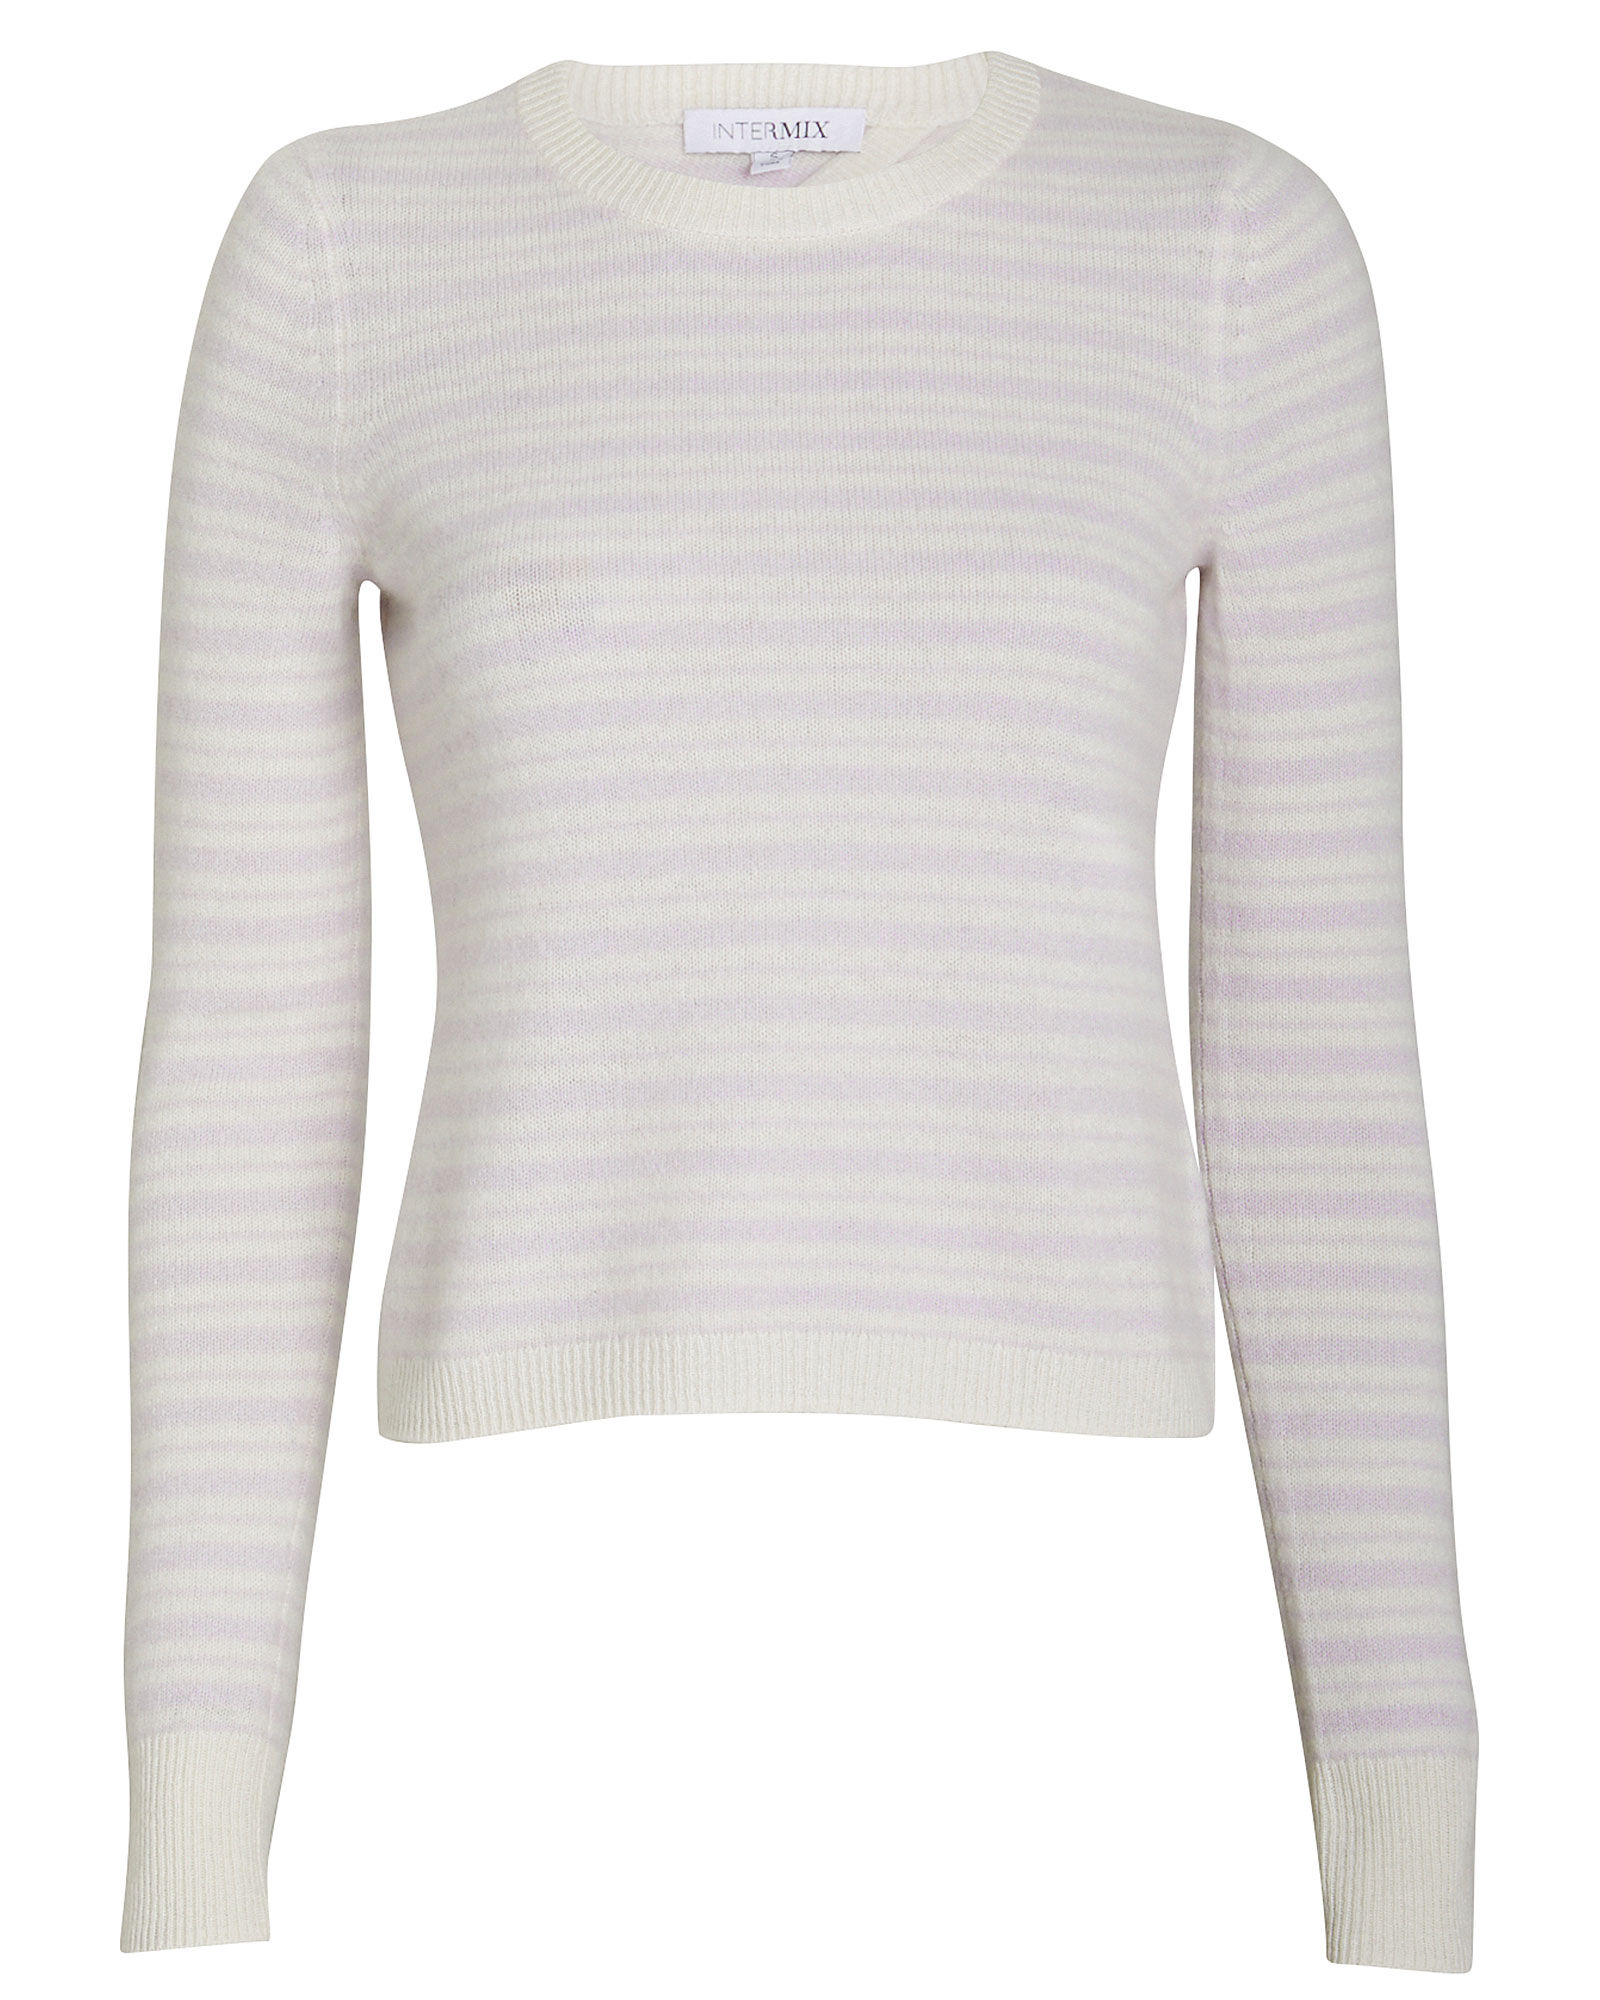 Noelle Striped Cashmere Sweater, LAVENDER/STRIPE, hi-res